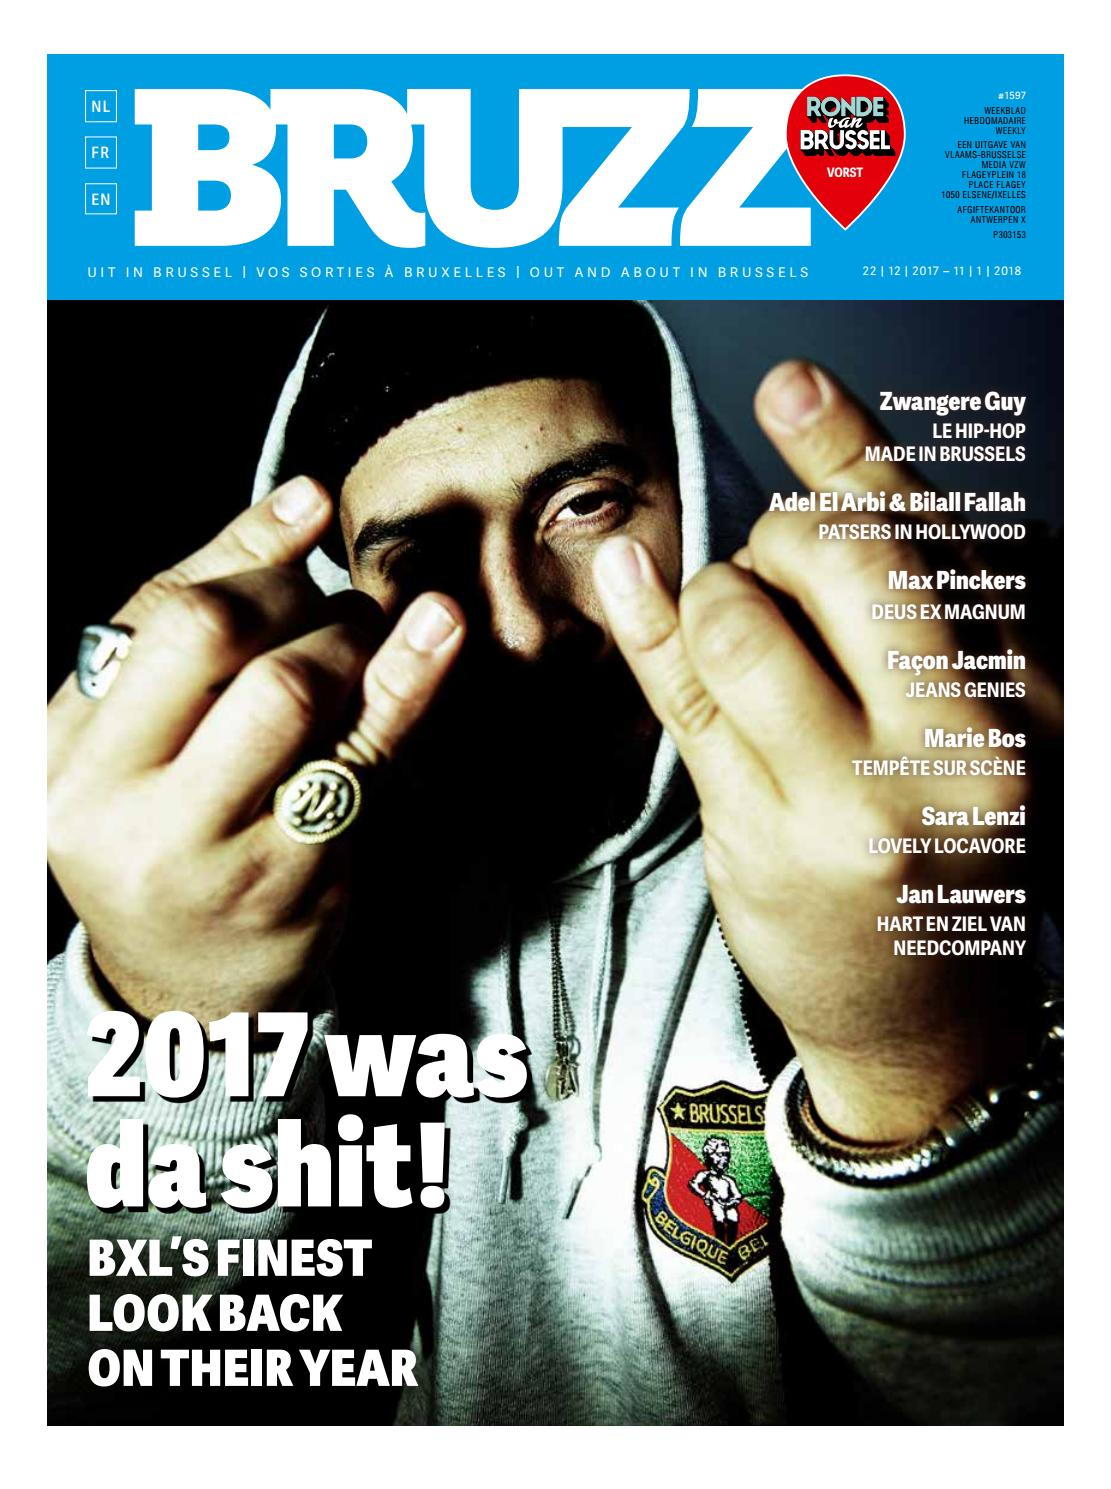 An Swartenbroekx Naakt bruzz uit - editie 1597bruzz.be - issuu